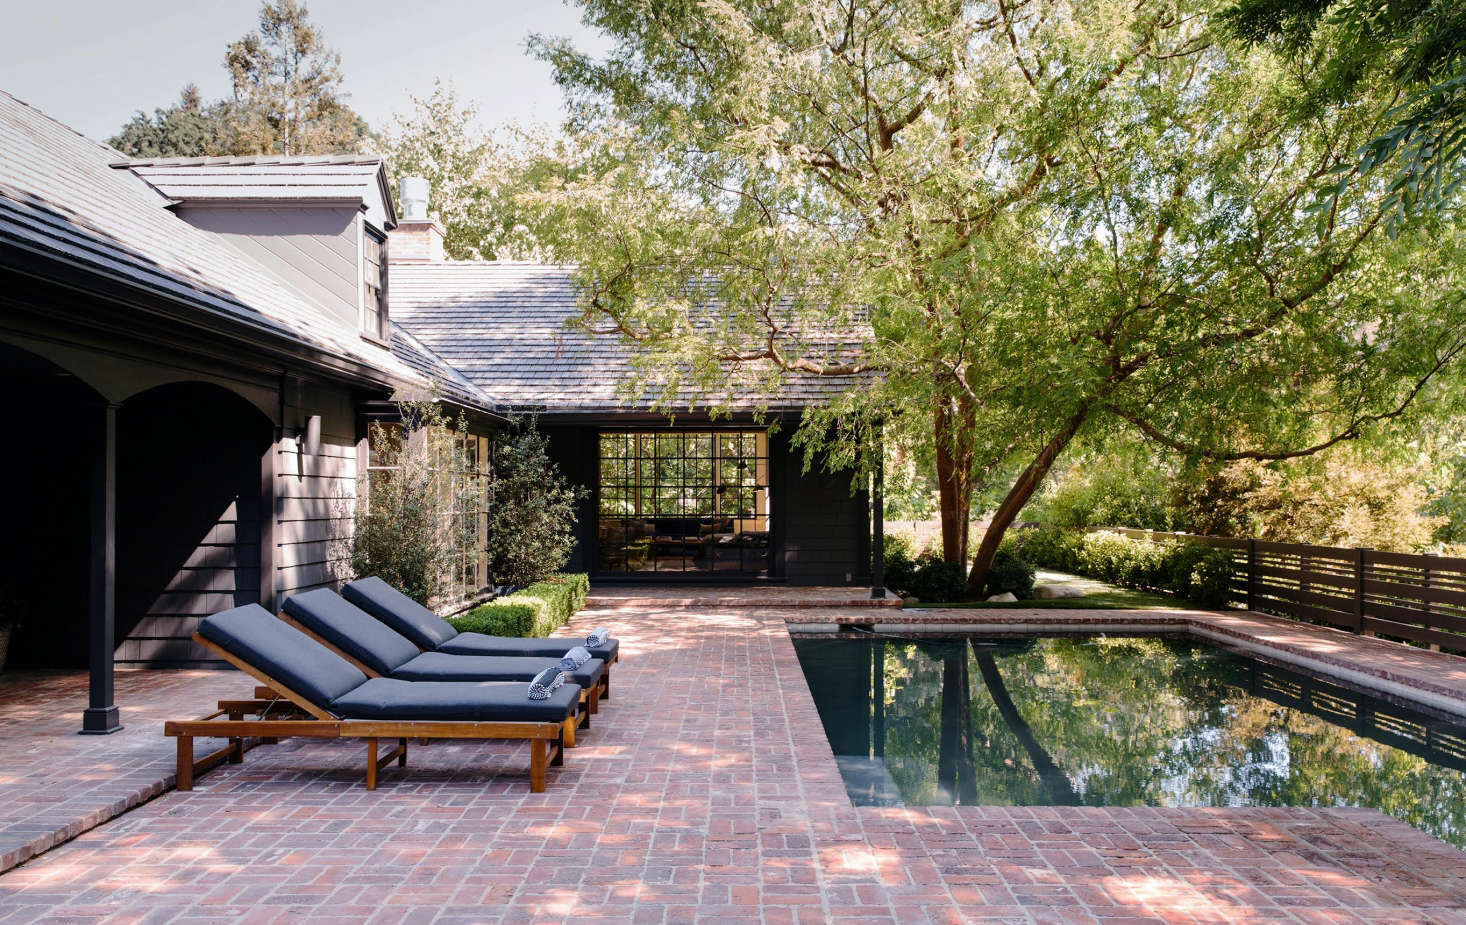 A swimming pool fence is a necessity for safety, but yours can make a style statement too. &#8